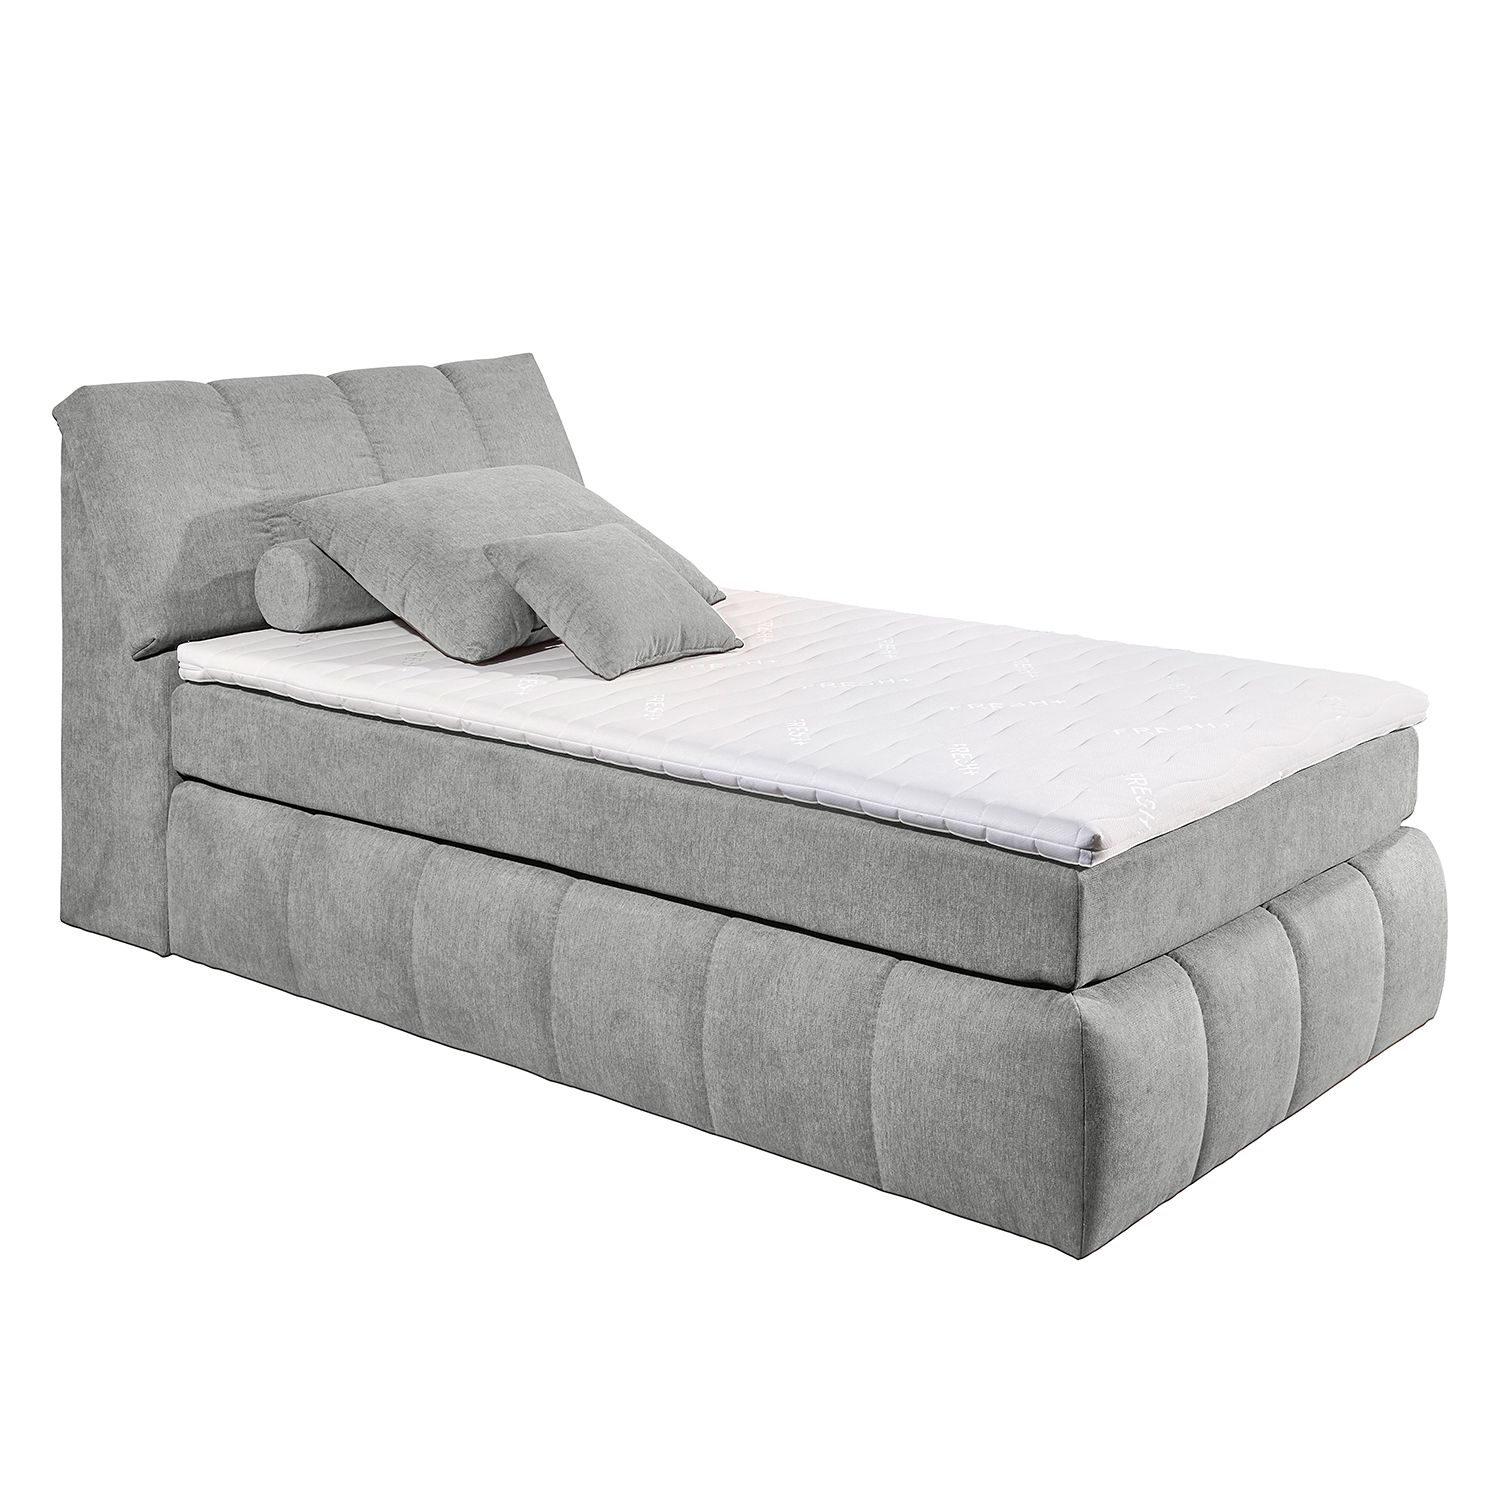 Boxspringbett FENOR - Webstoff